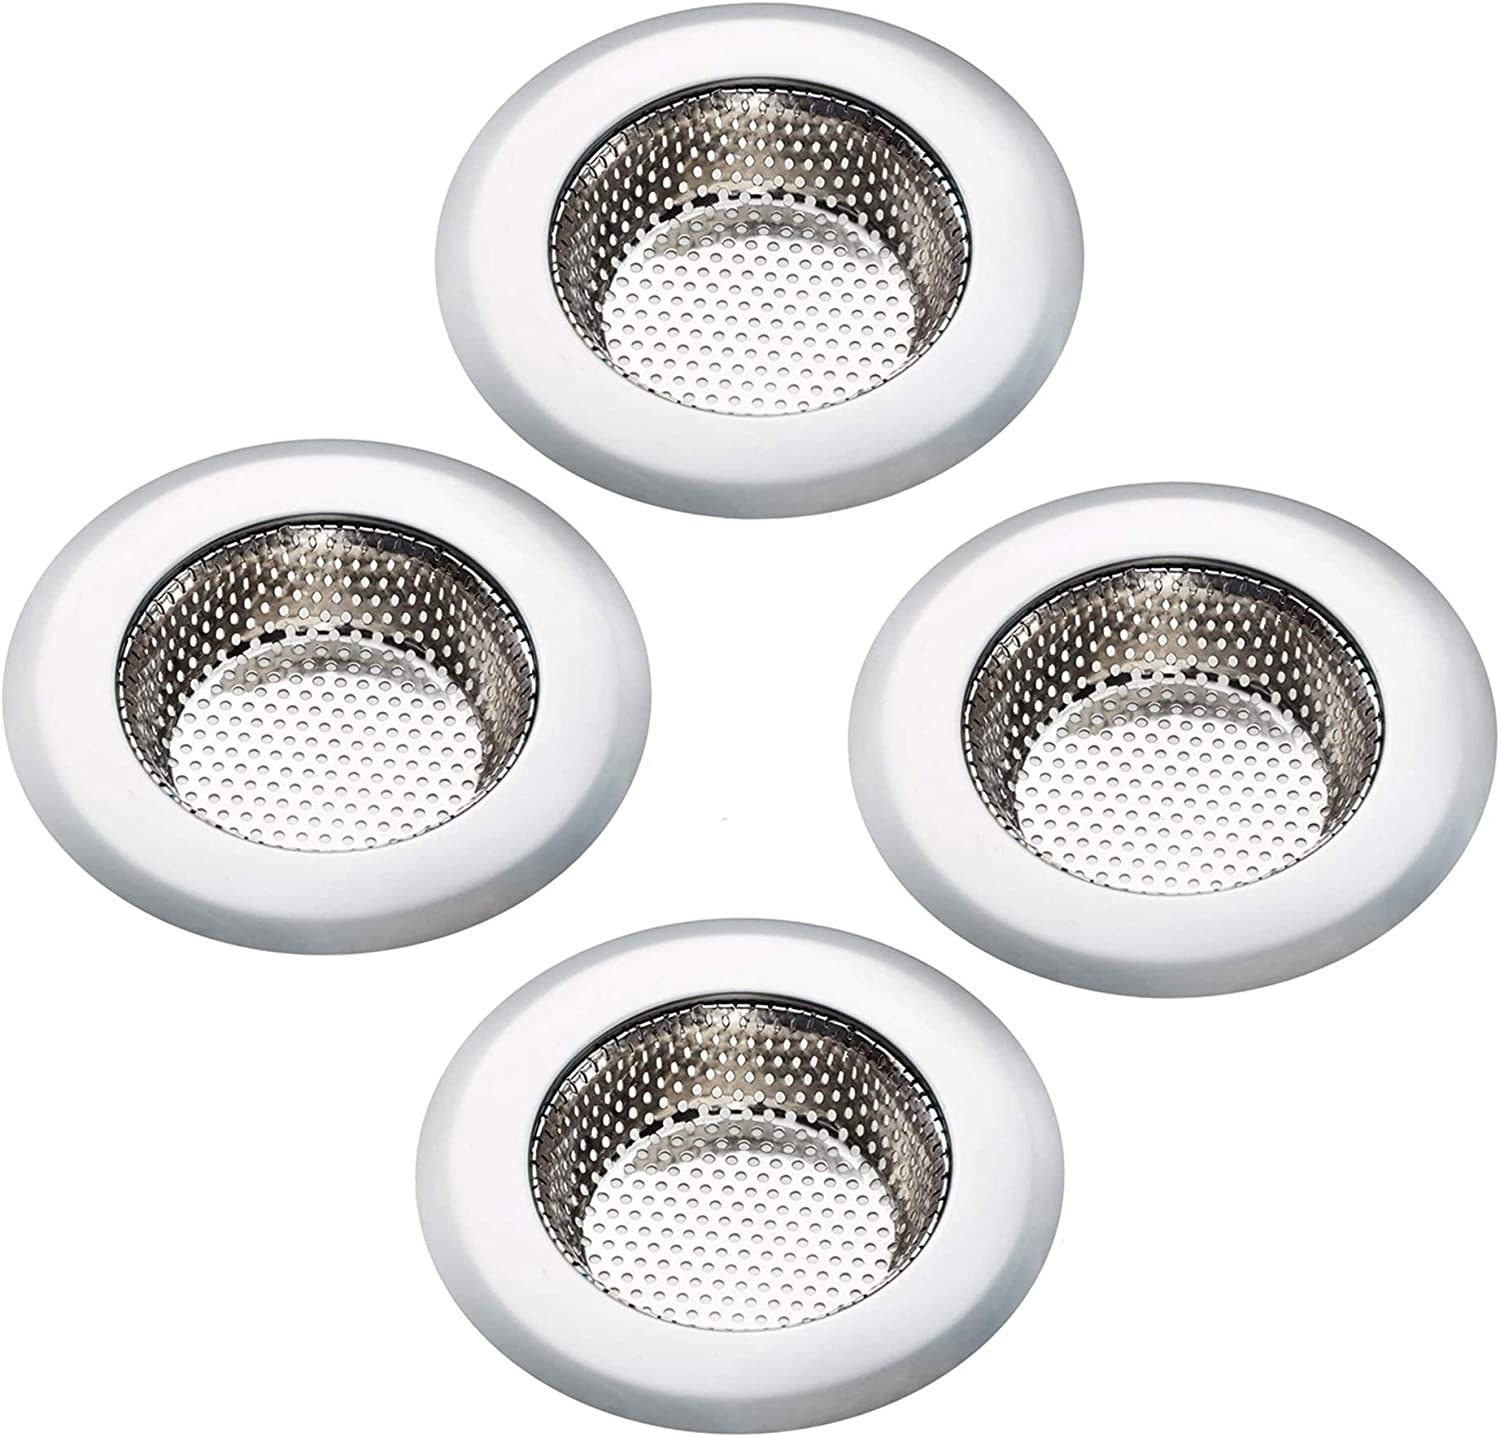 4 Pack Kitchen Sink Strainer - Large Wide Rim 4.5 Inches Diameter - Stainless Steel Drain Colander Filter Basket Protector Screen Cover Plug Trap Accessories, Garbage Disposal Stopper Catcher